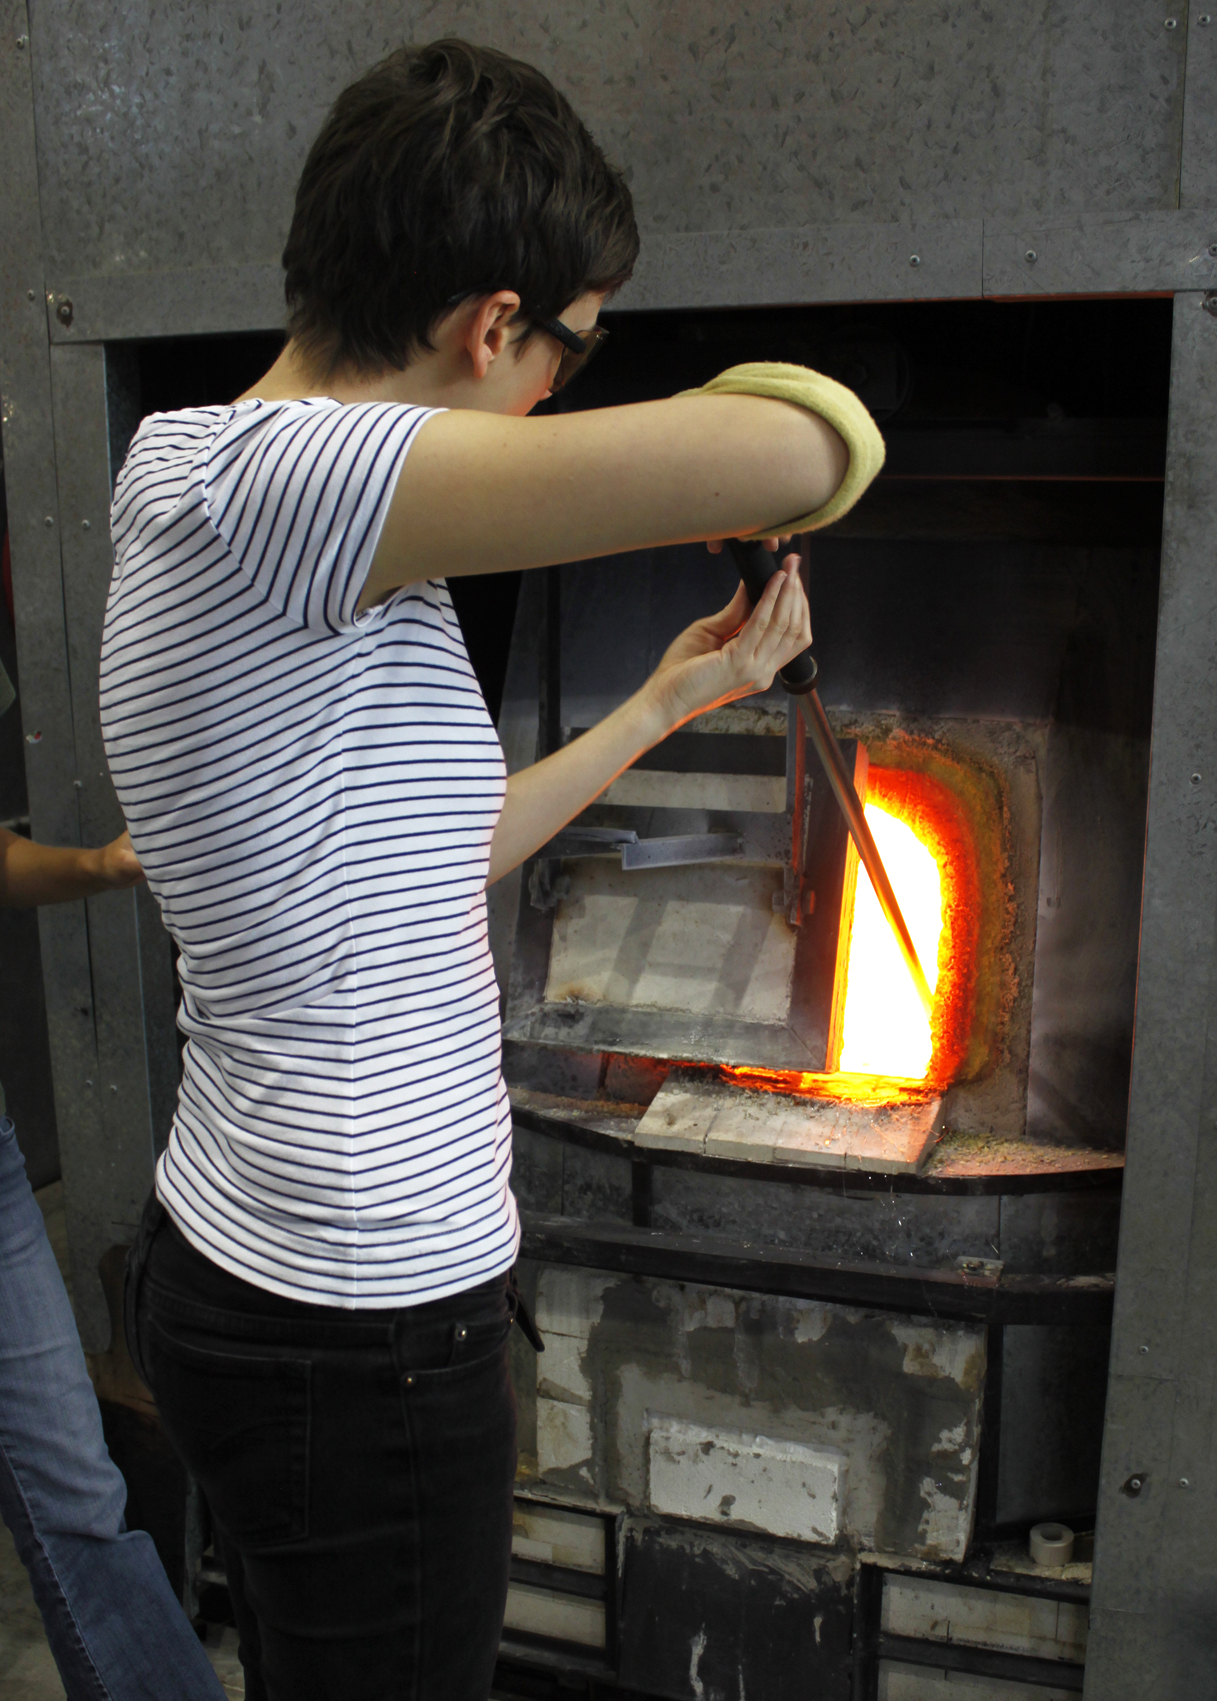 Dipping into the furnace again to enlarge the glass.